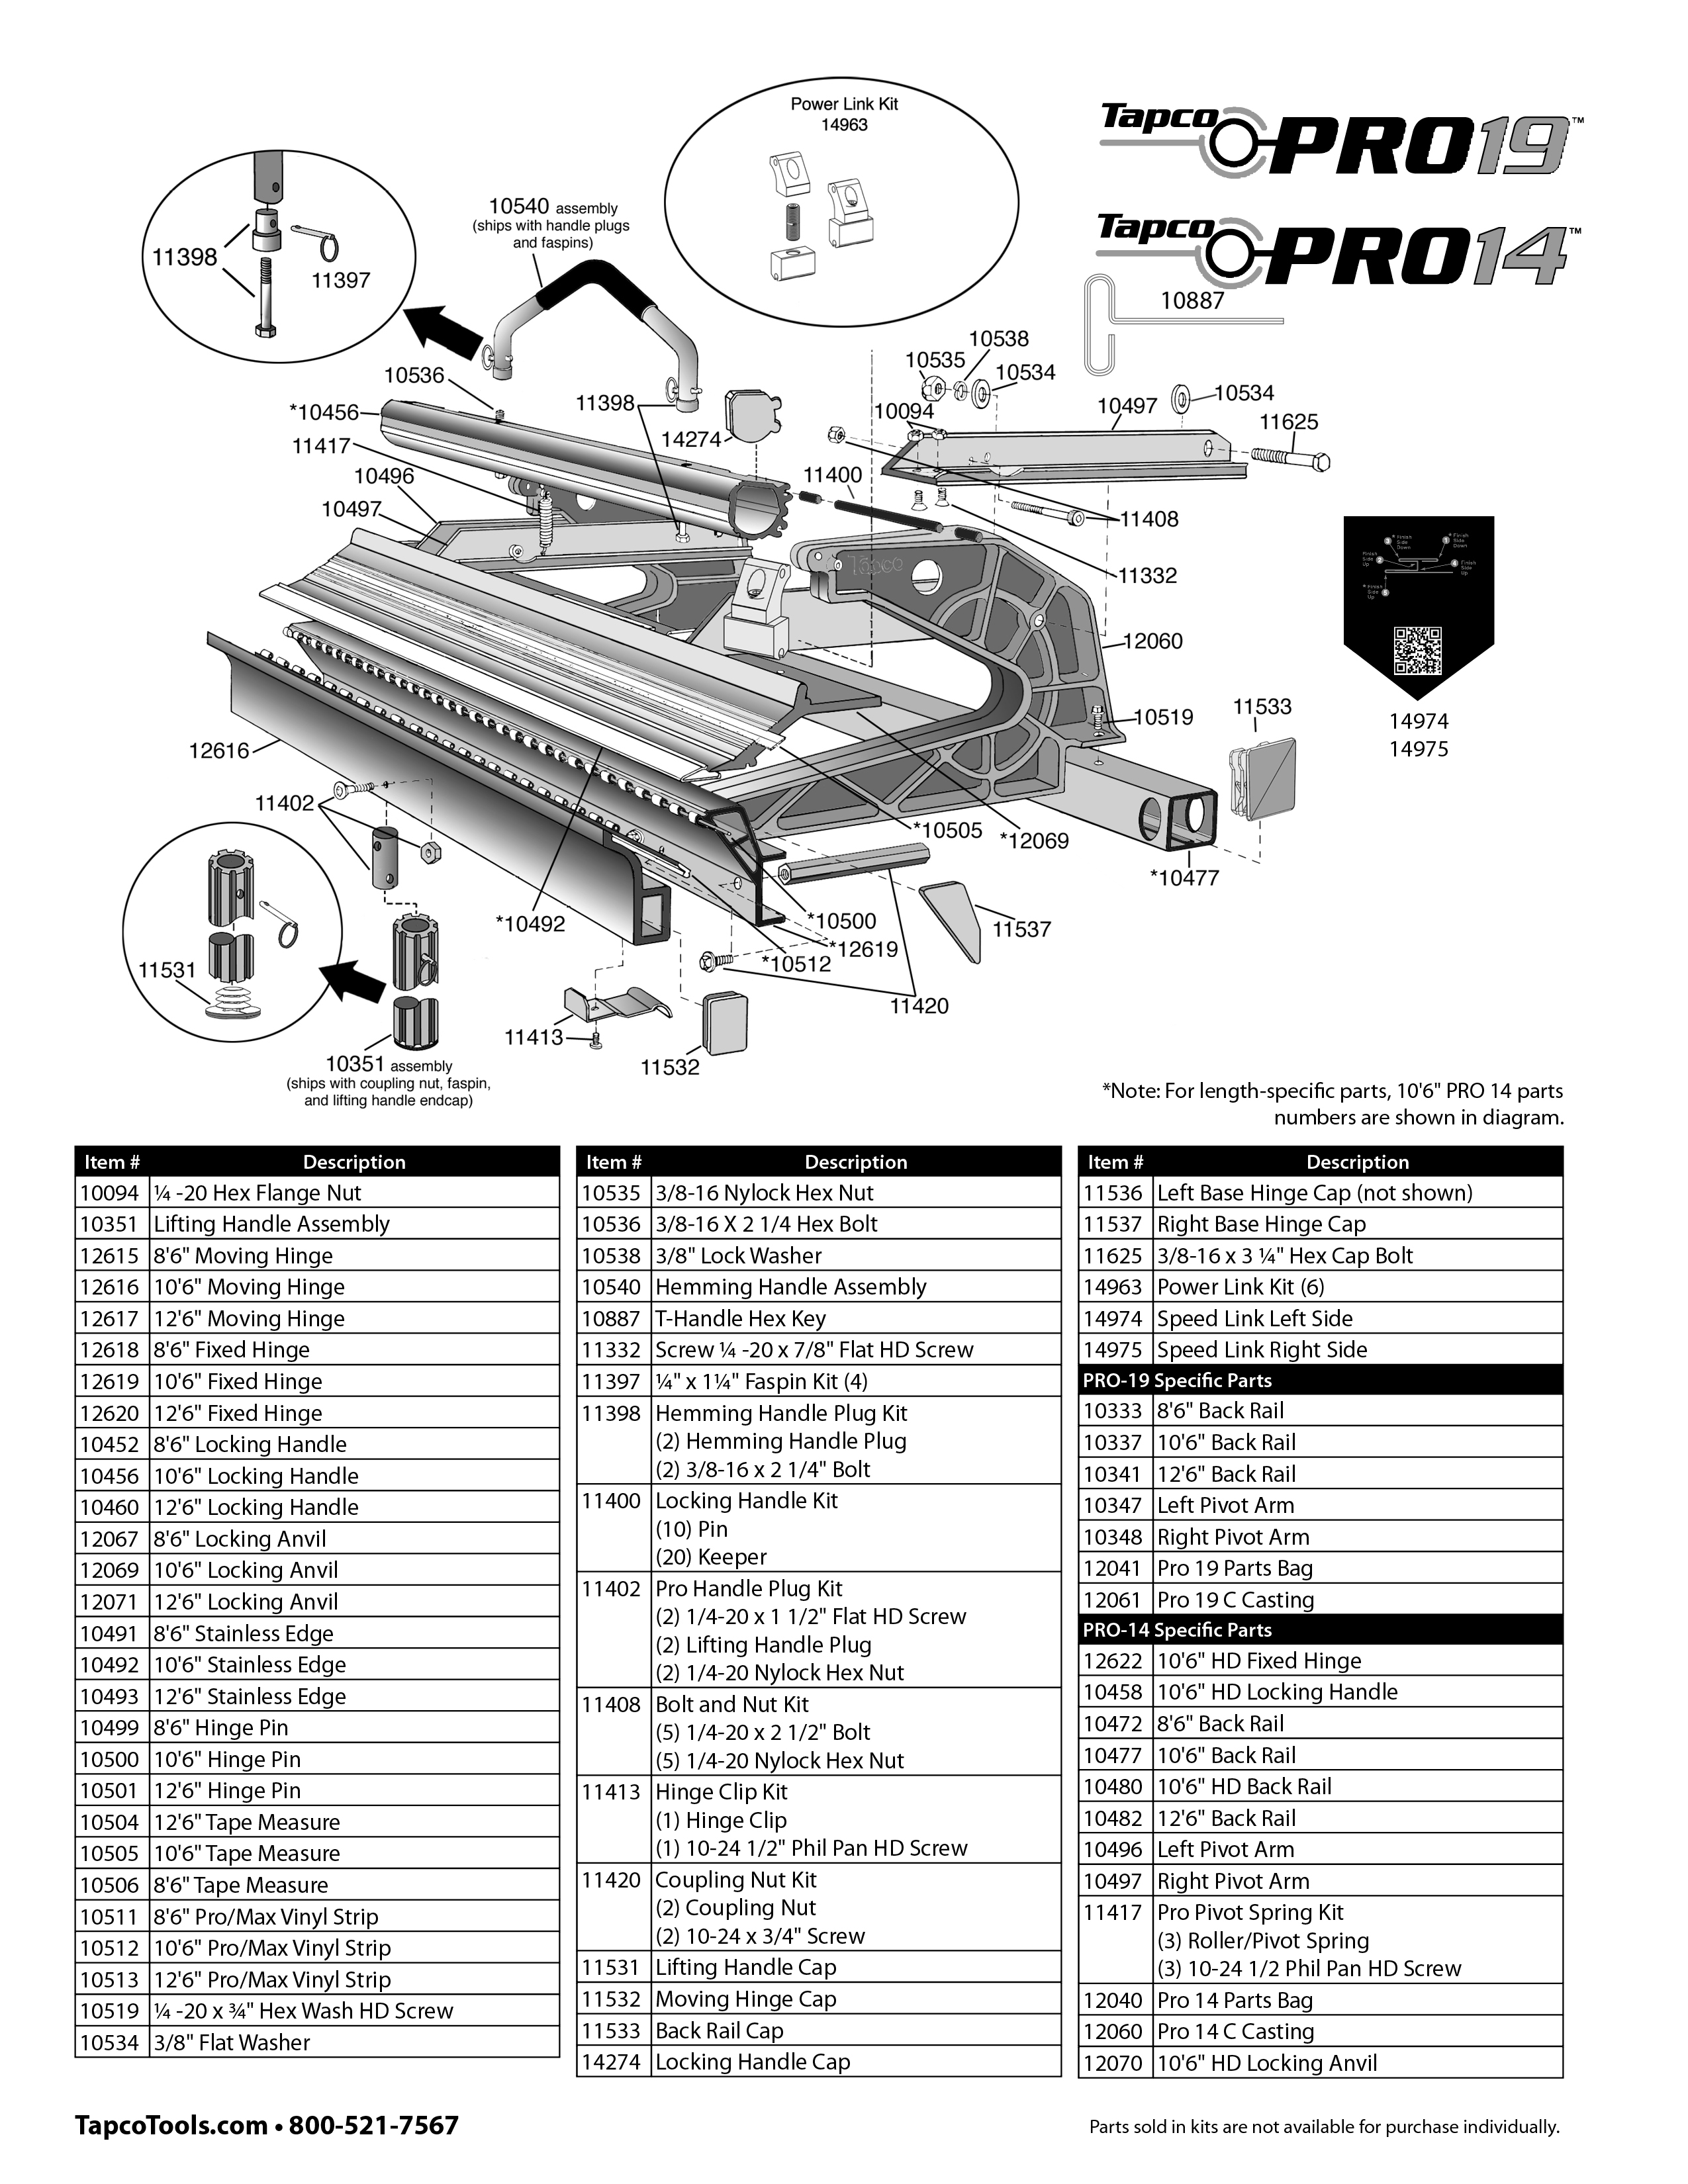 Tapco Pro 14 Replacement Parts From Buymbs